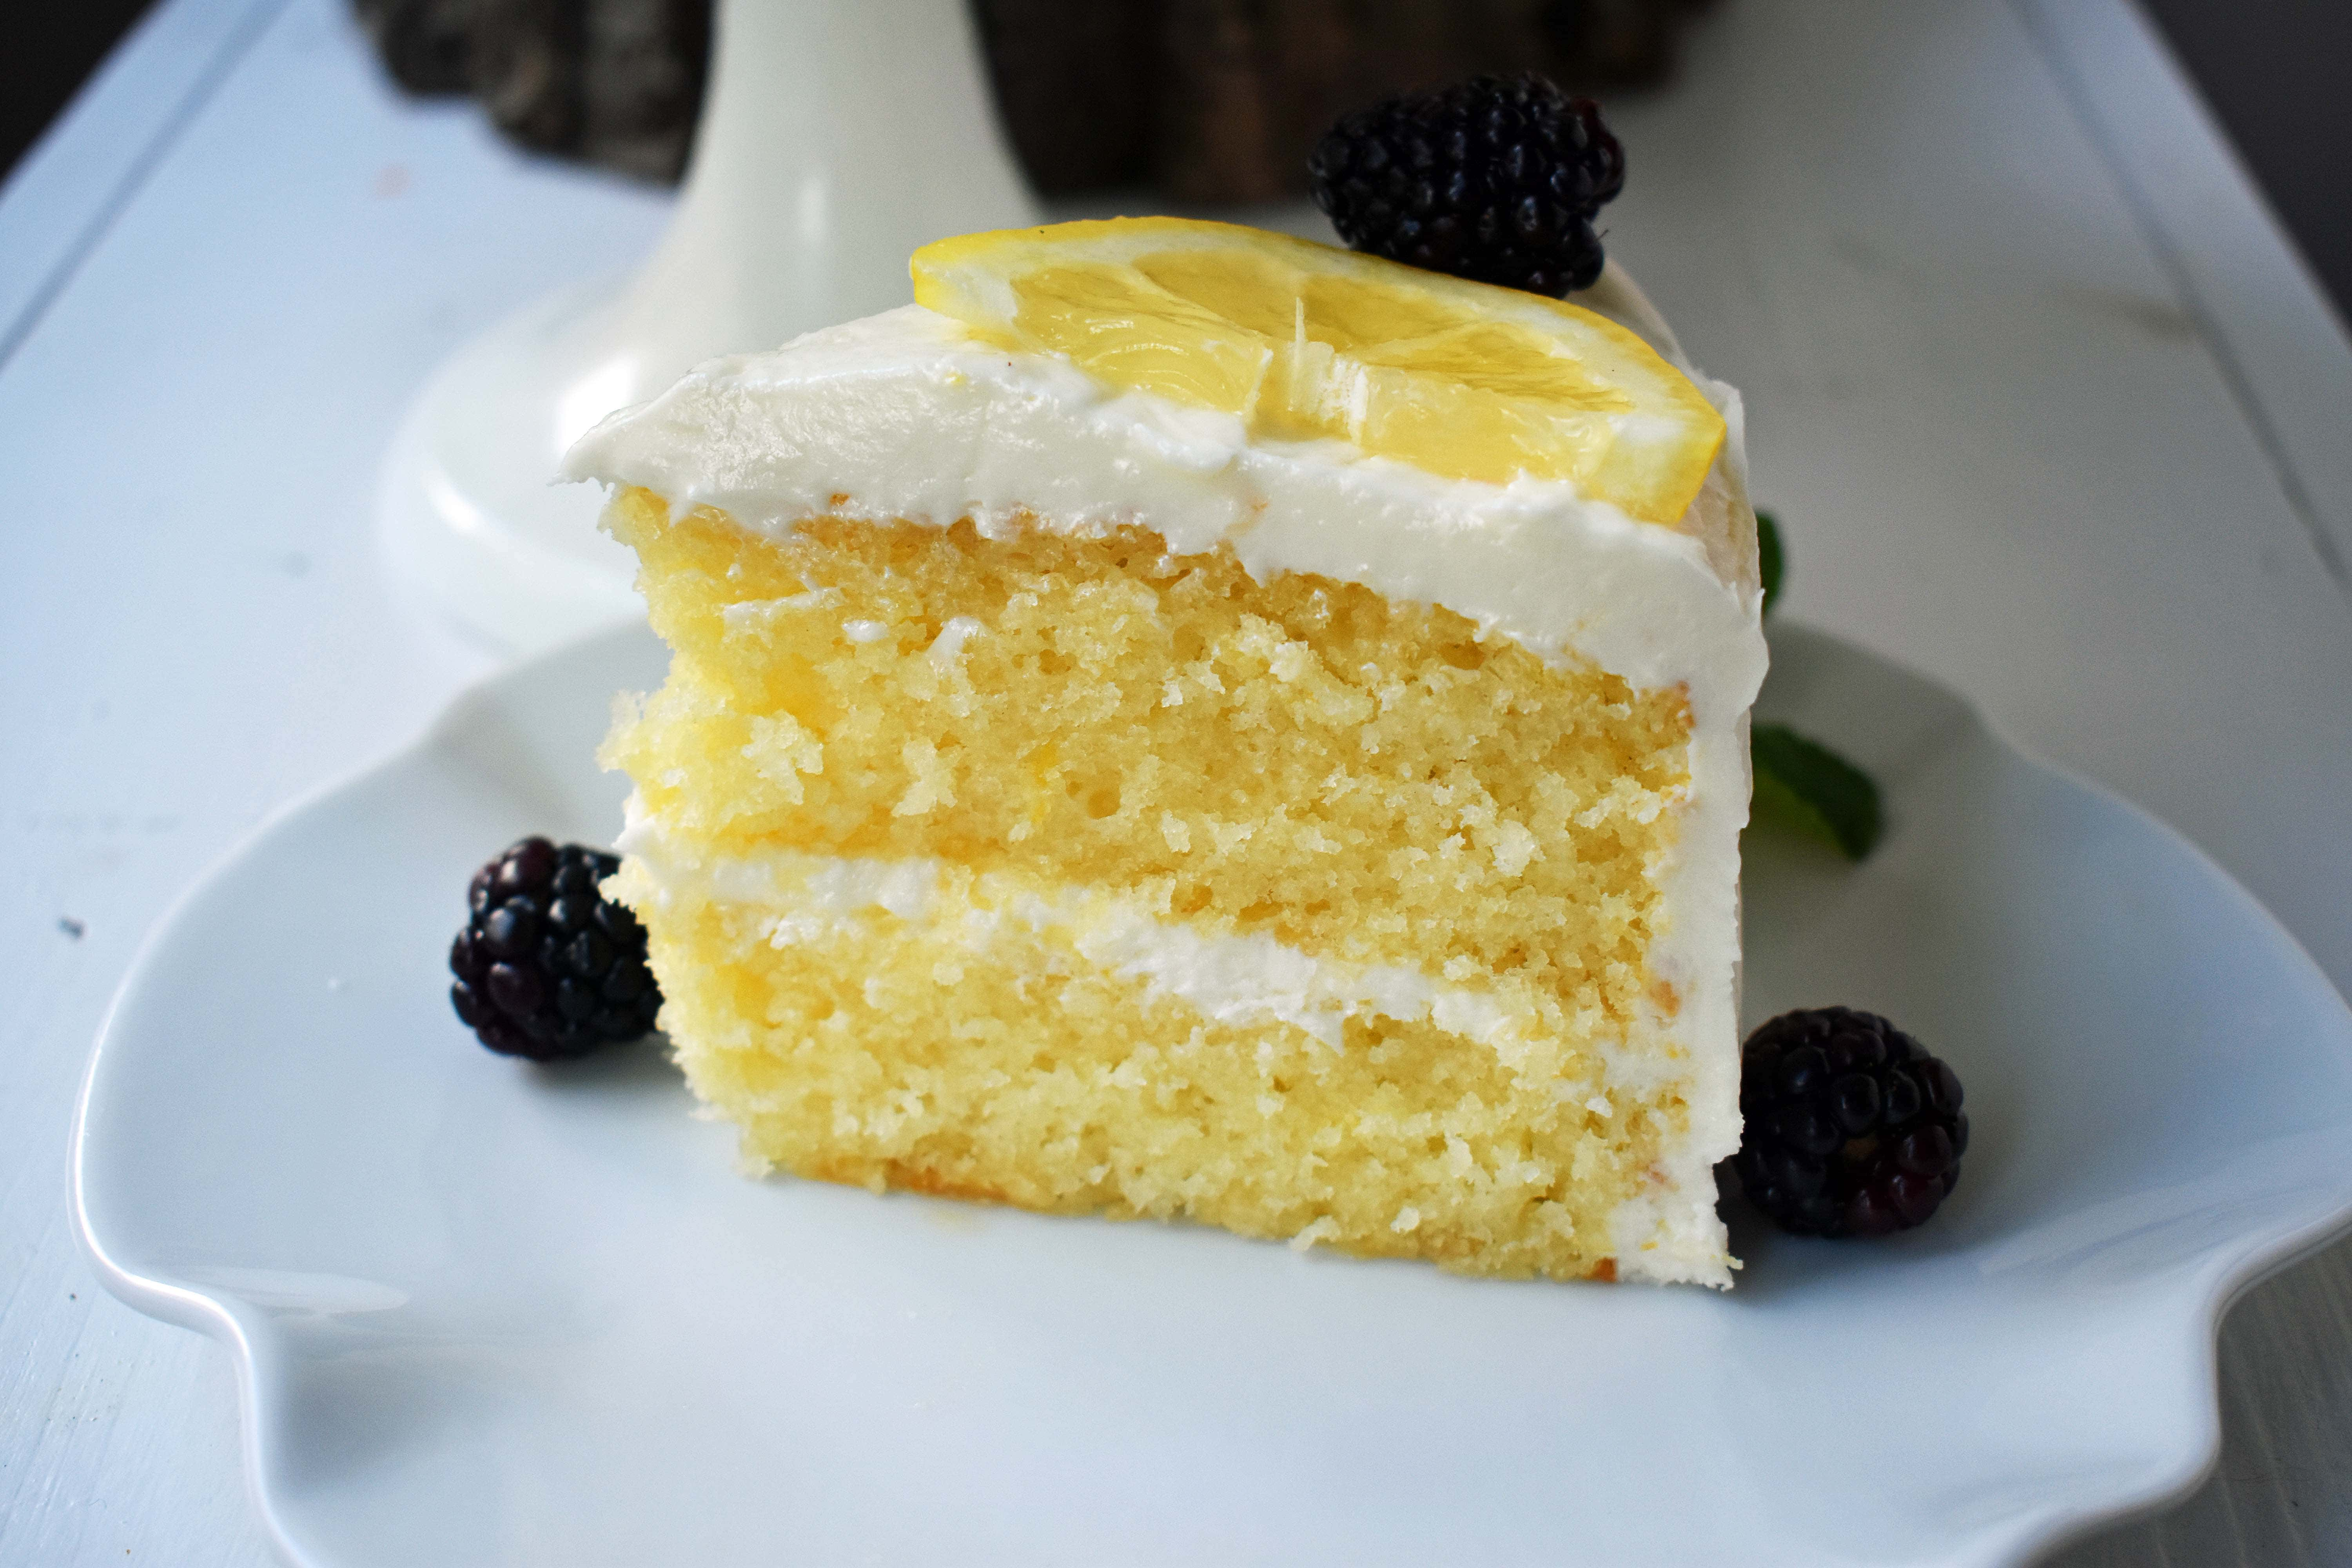 Italian Lemon Olive Oil Cake. Soft and tender moist lemon cake topped with lemon vanilla cream cheese frosting. The perfect lemon cake! www.modernhoney.com